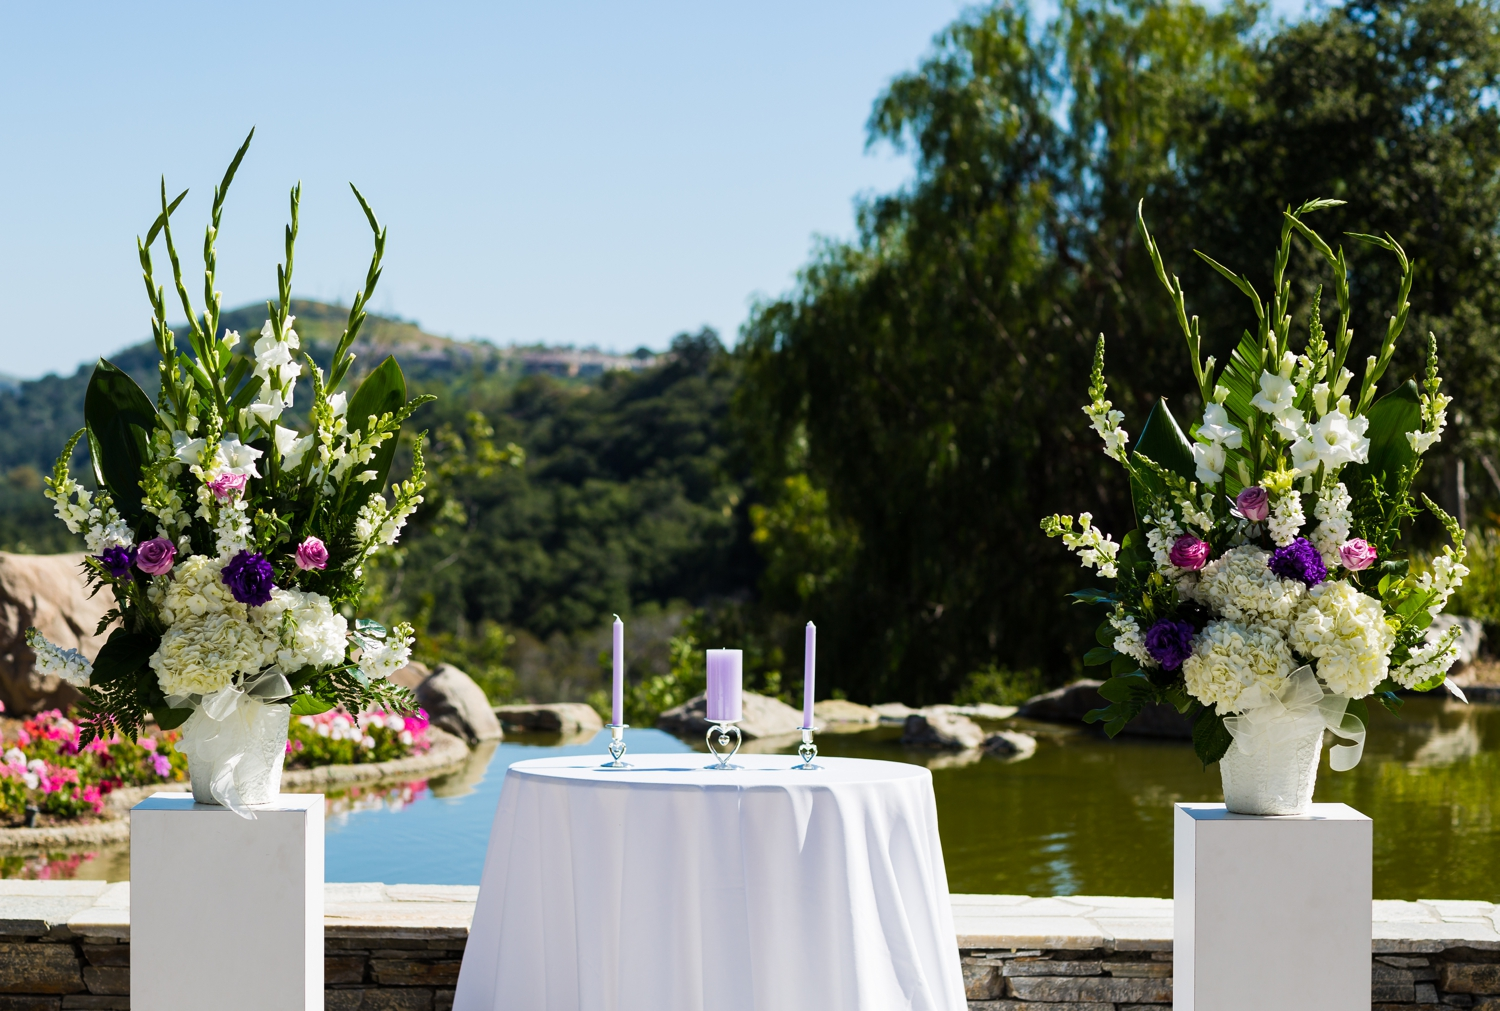 Wedding Ceremony overlooks golf course at Dove Canyon Country Club